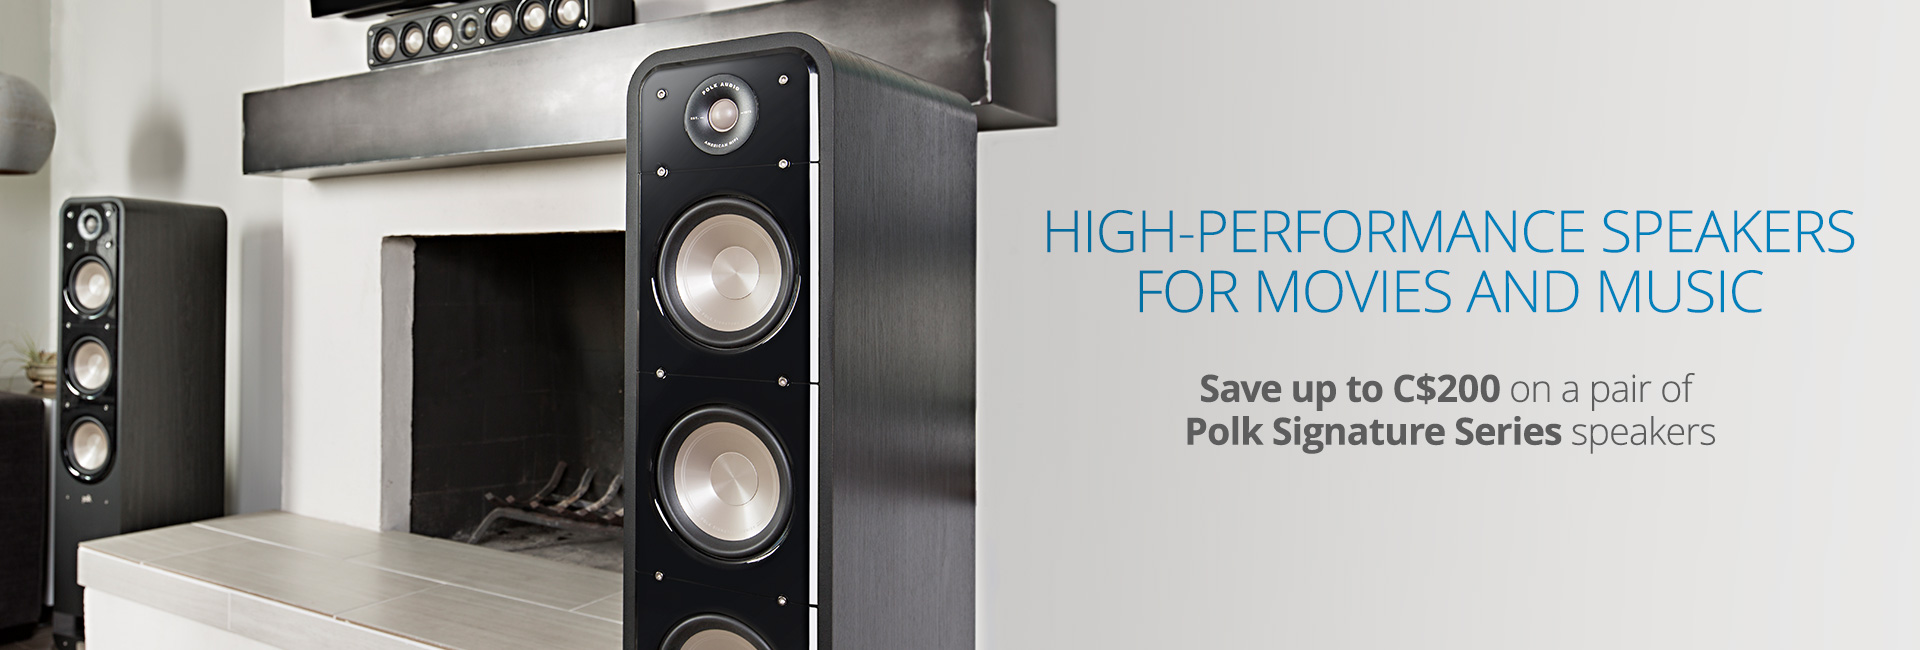 Save up to C$200 on a pair of Polk Signature speakers